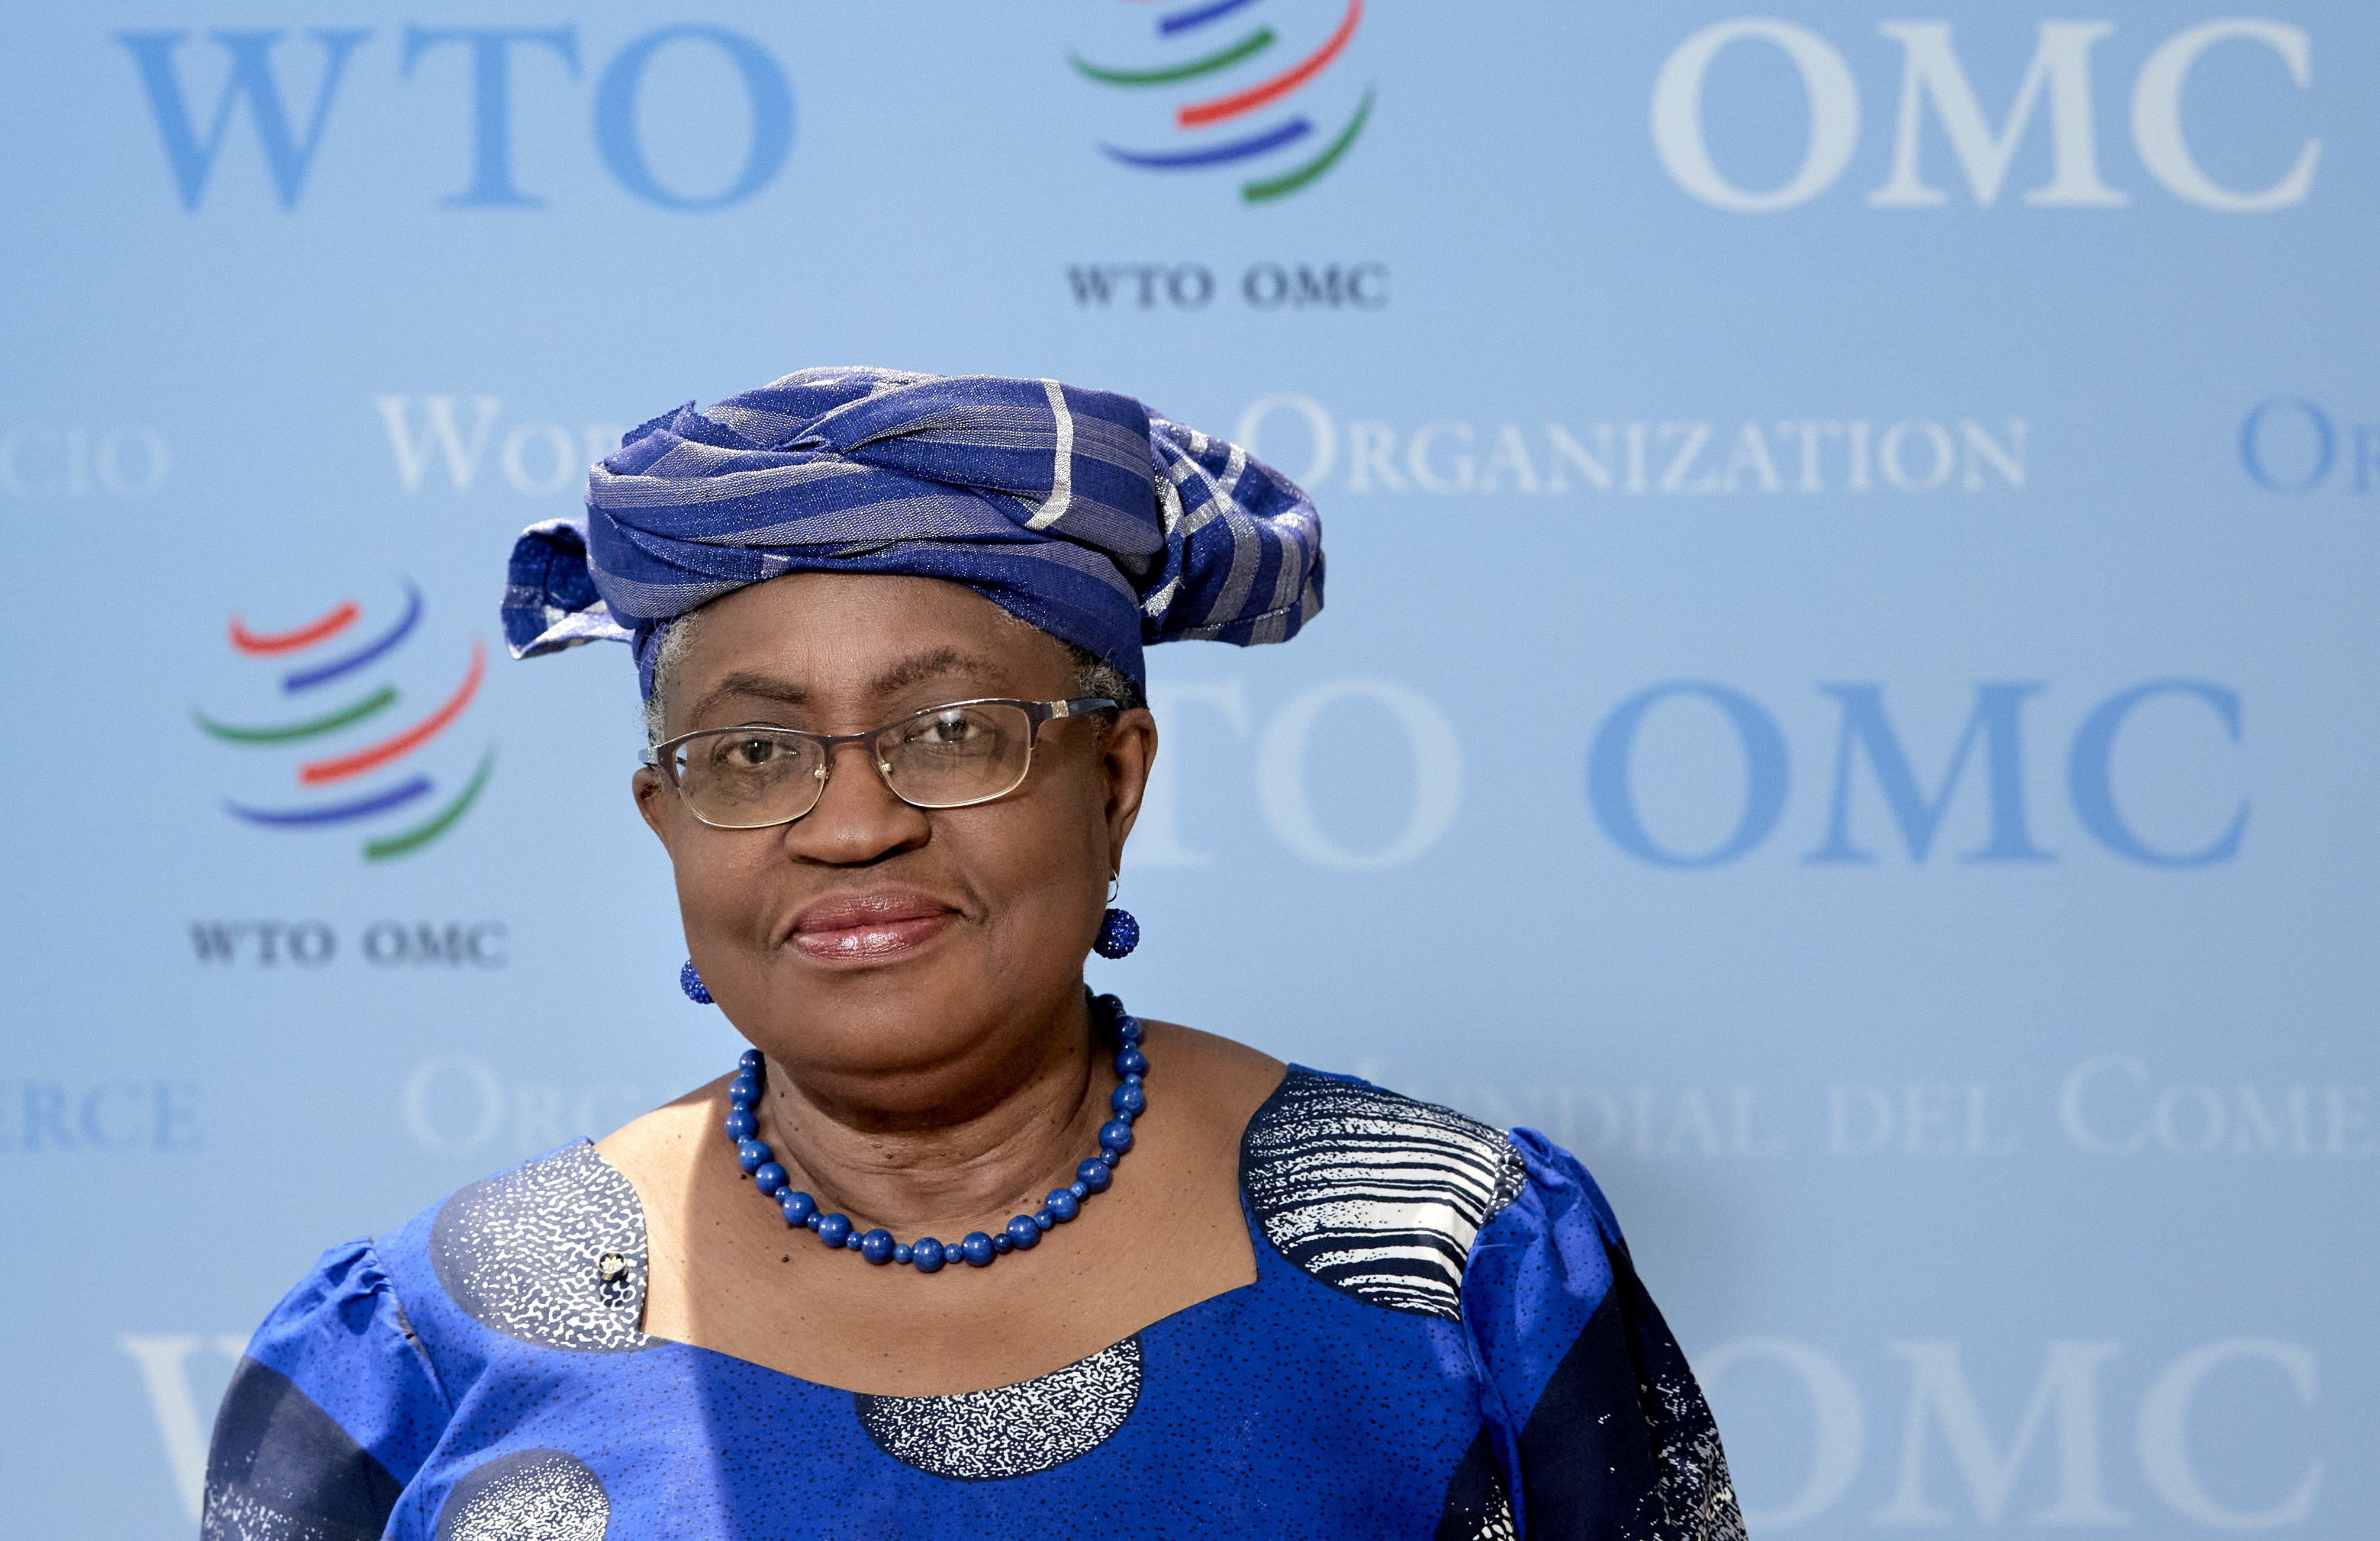 World Trade Organisation (WTO) Director-General Ngozi Okonjo-Iweala poses before an interview with Reuters at the WTO headquarters in Geneva, Switzerland, April 12, 2021. REUTERS/Denis Balibouse/